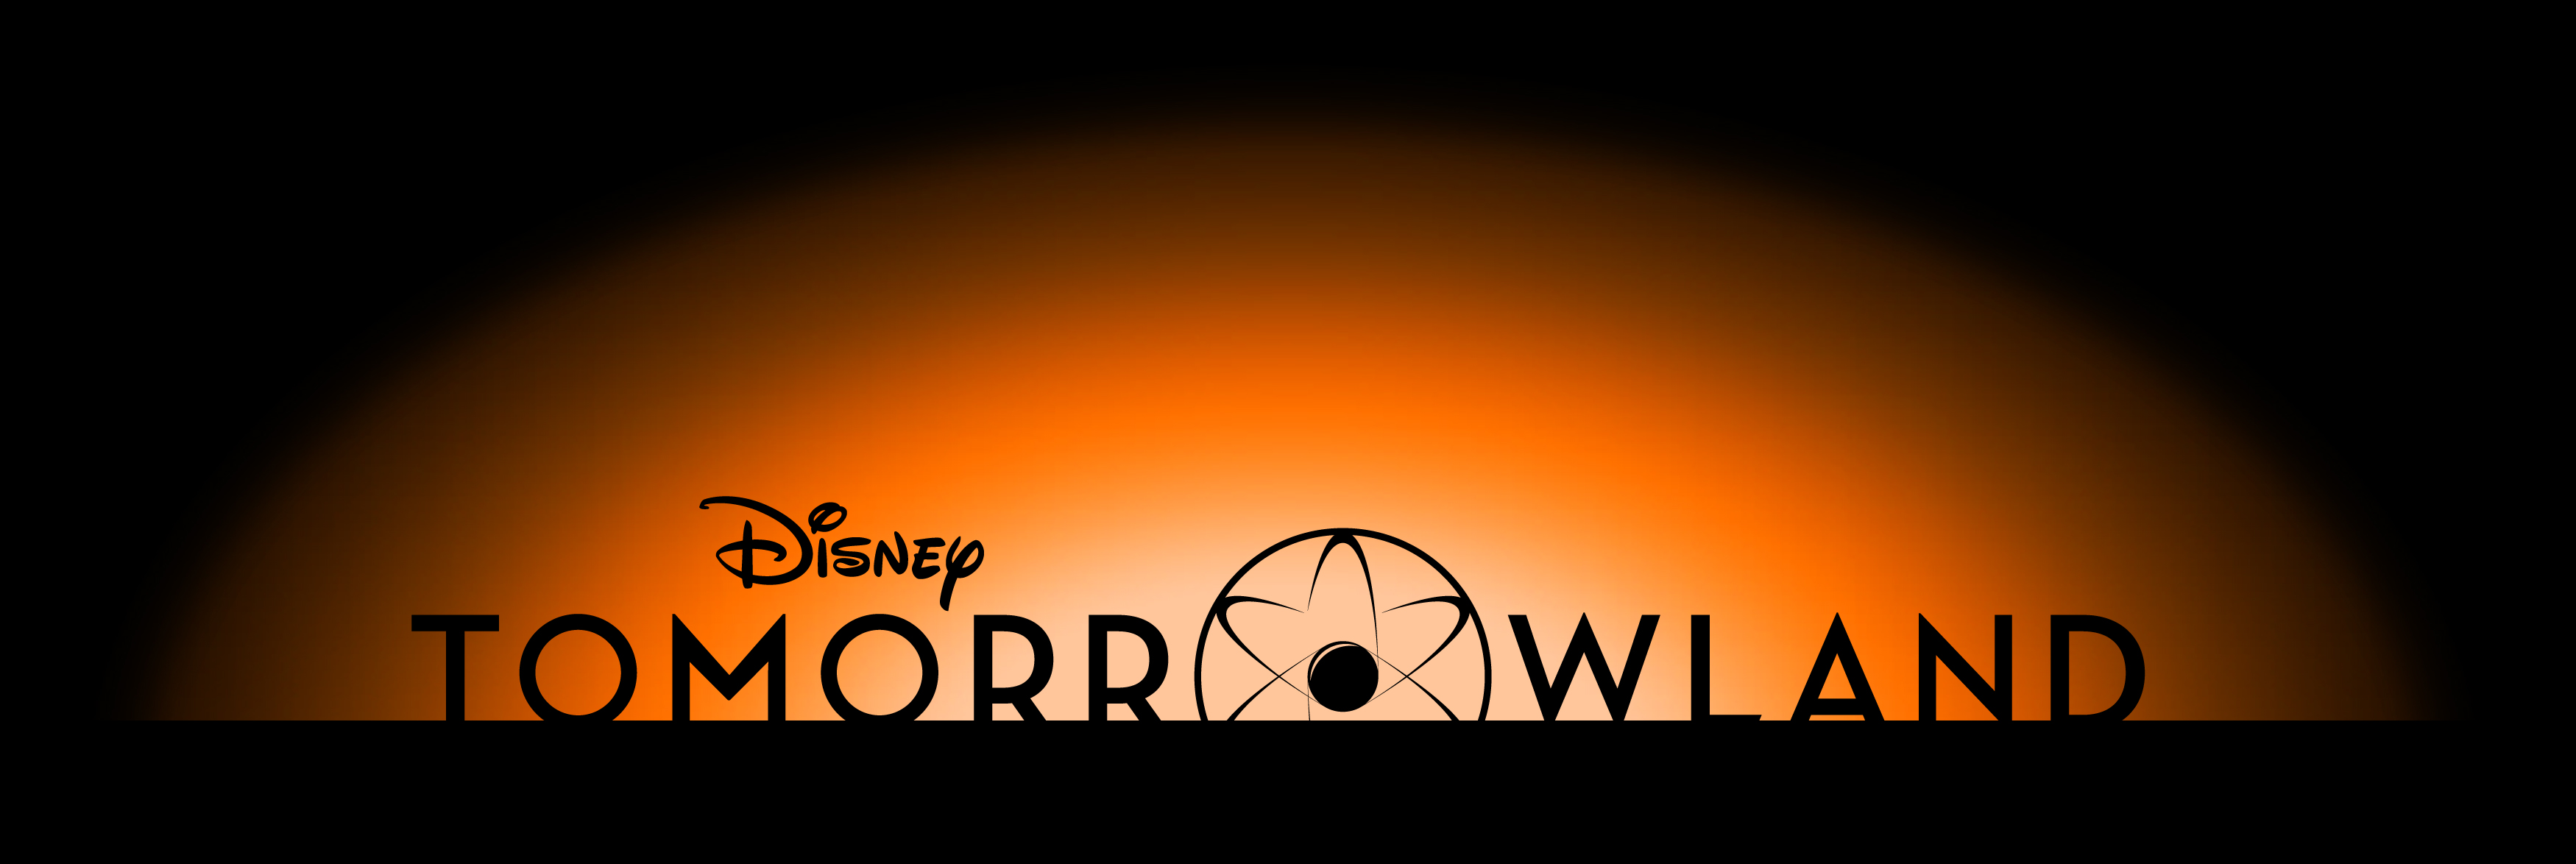 disney-tomorrowland-movie-2015-logo.jpg